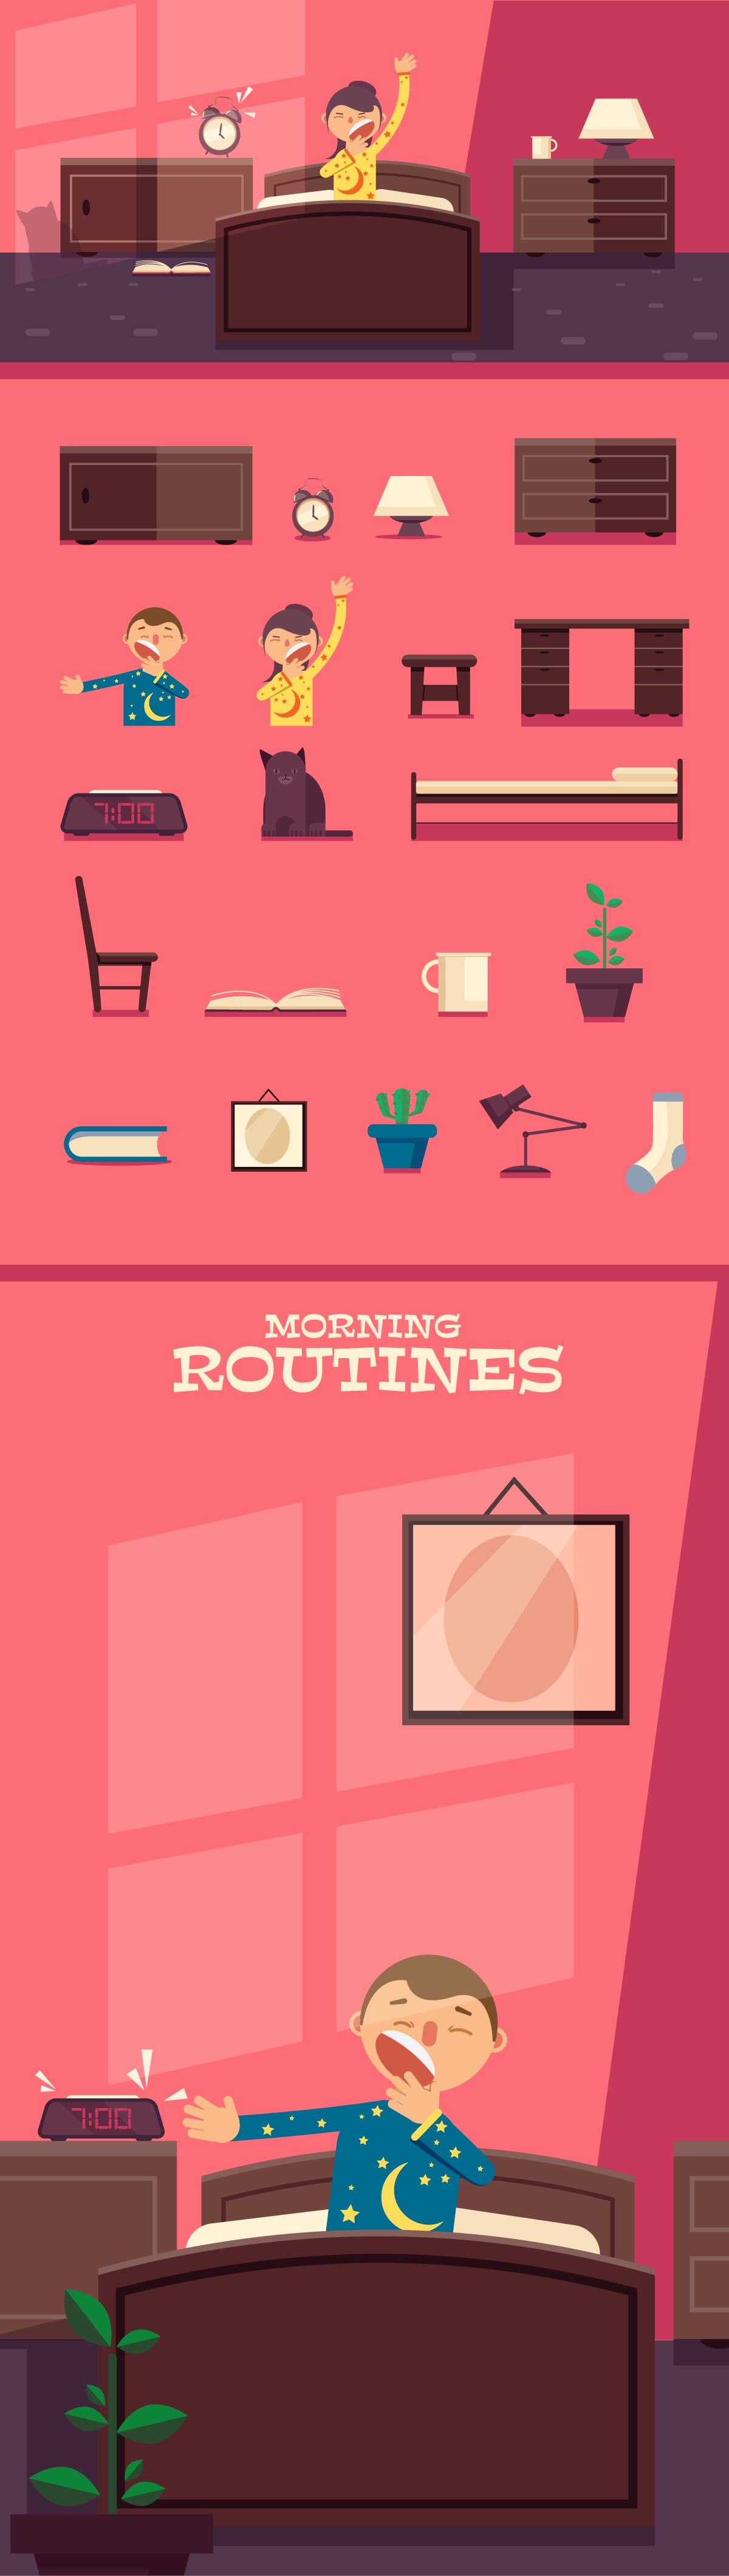 The Best Mega Graphics Bundle. 1000+ Premium Items for $49 - morning routines elements1